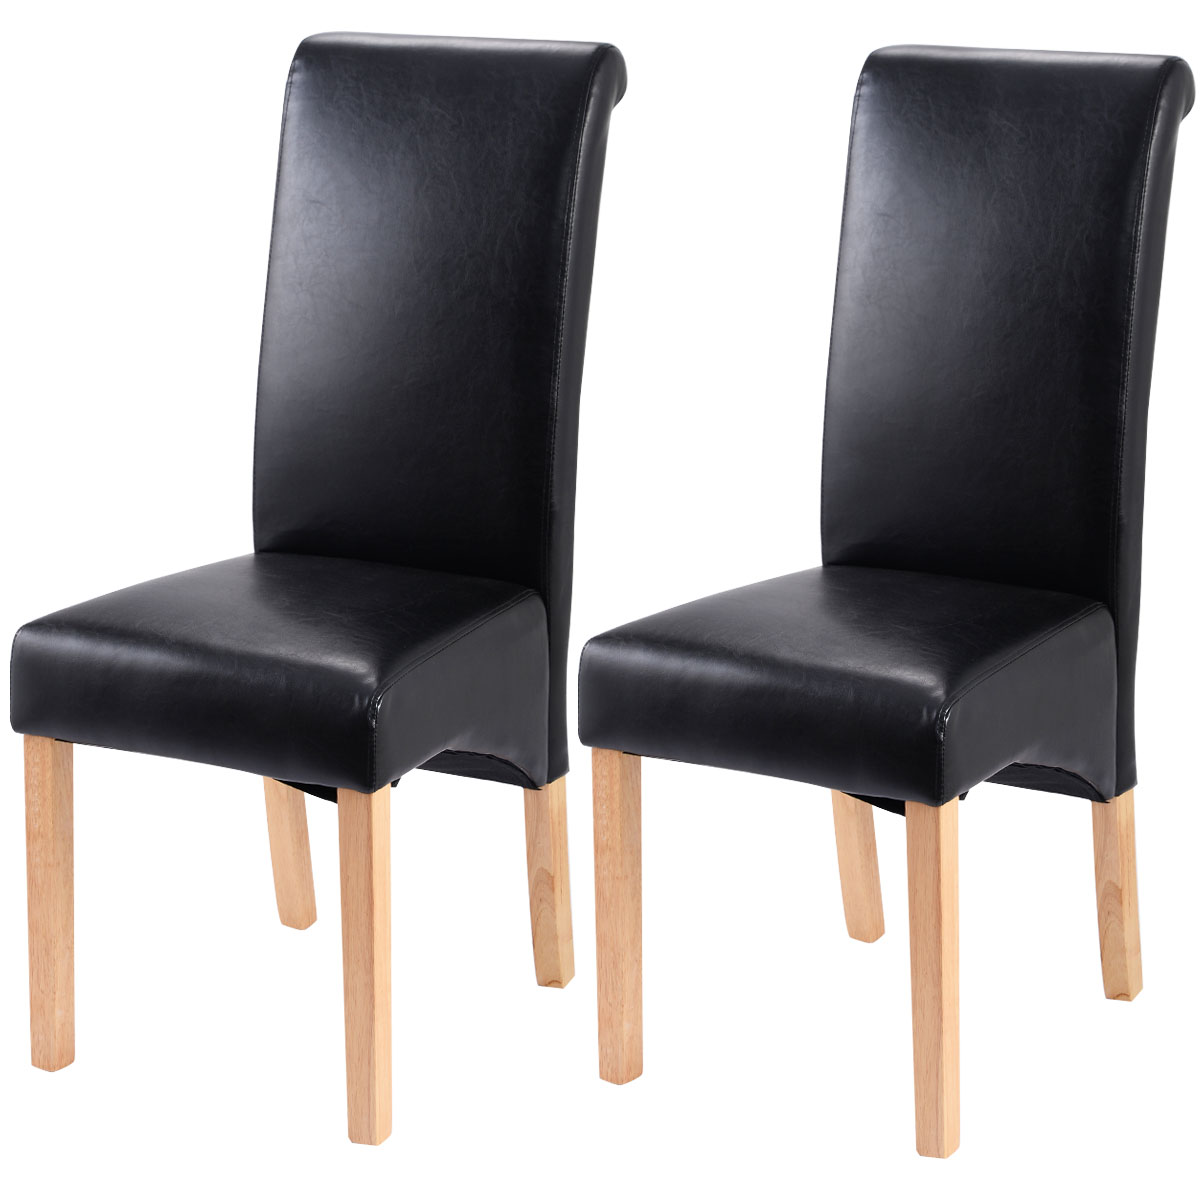 Costway Set of 2 Leather Wood Contemporary Dining Chairs Elegant Design Home Room (Black)